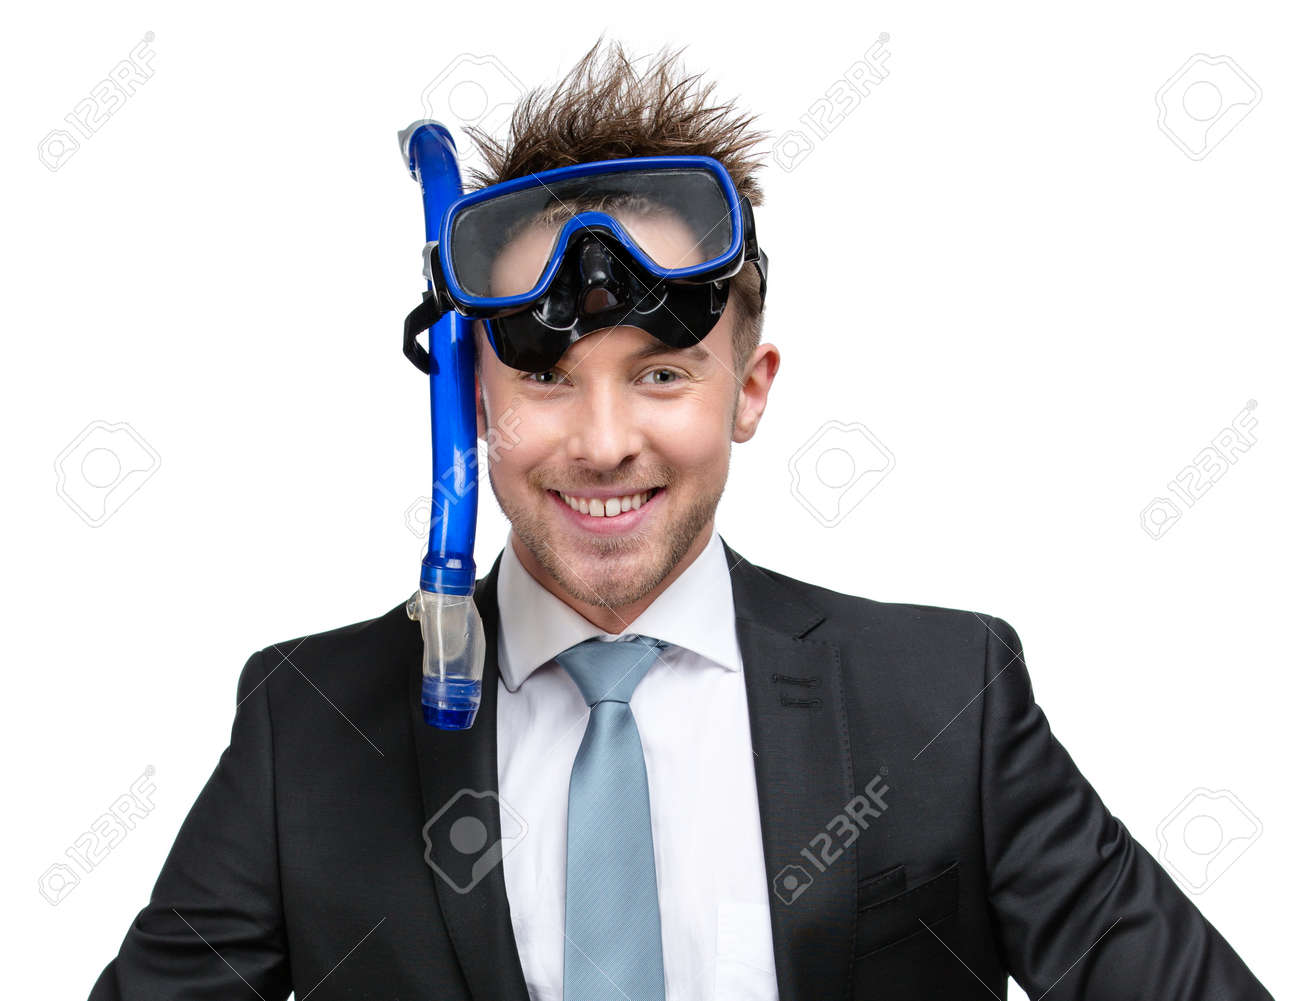 Businessman wearing suit and goggles with snorkel, isolated on white Stock Photo - 22279543